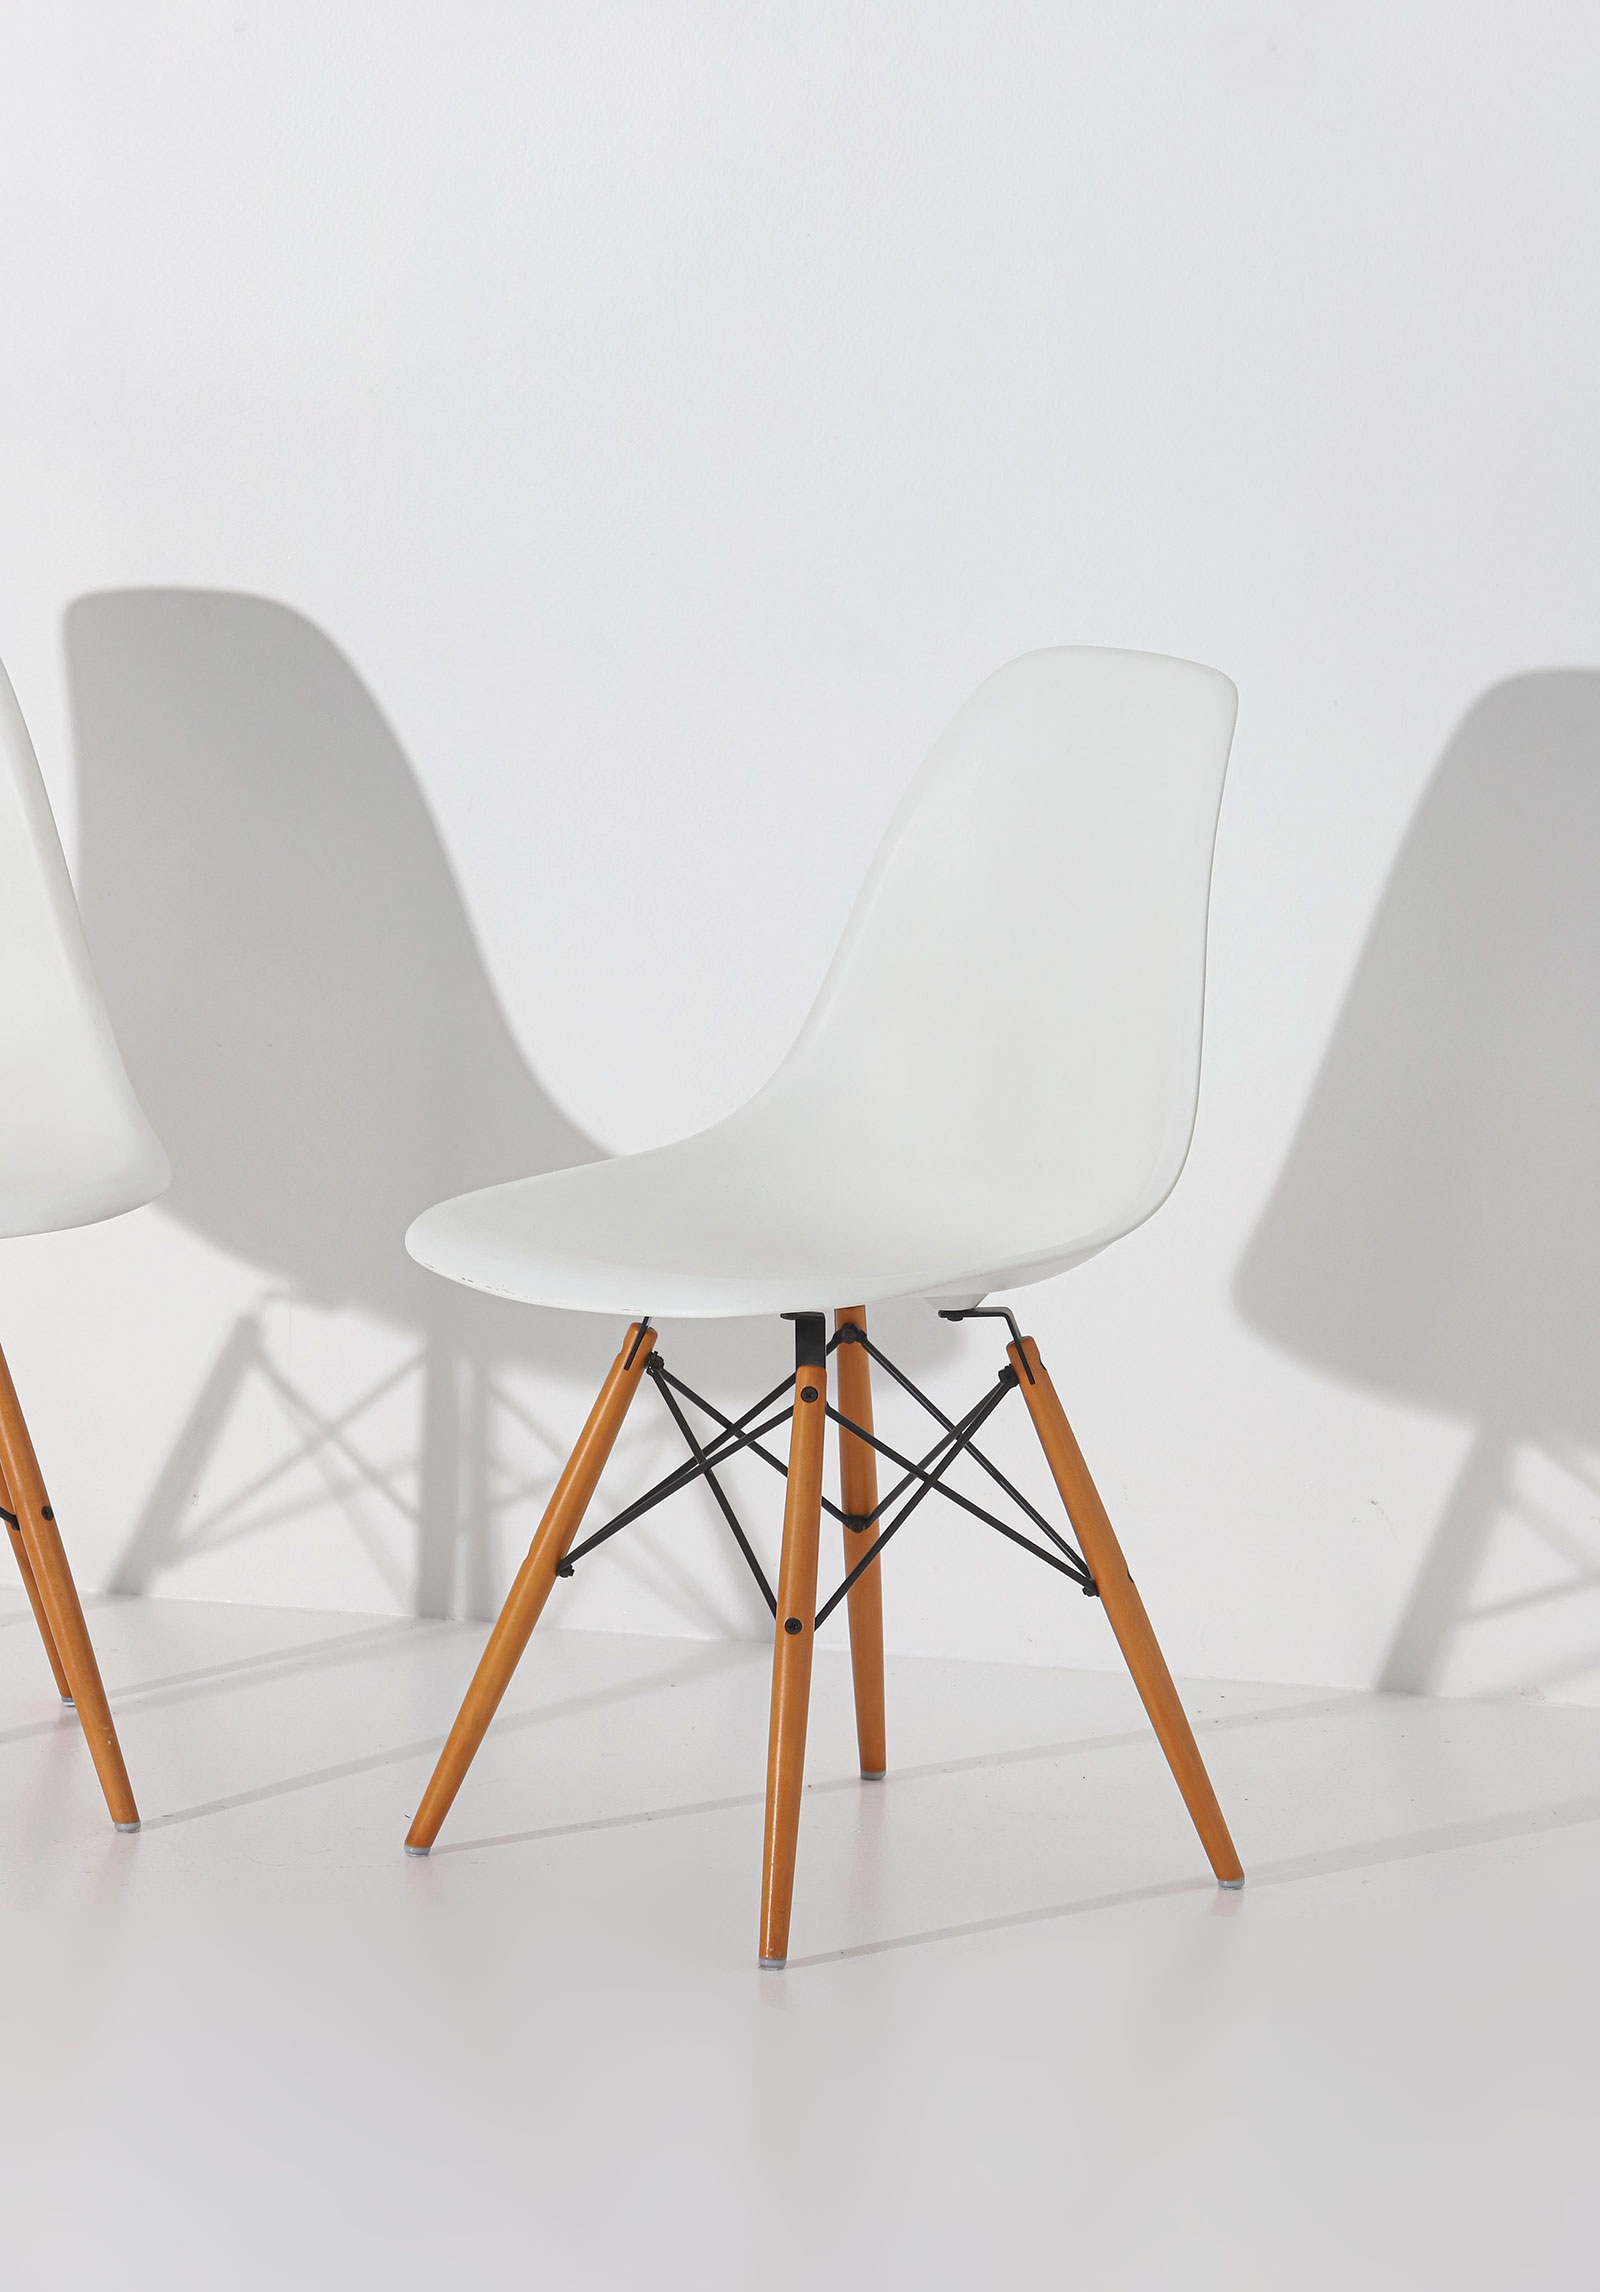 Eames DSW Vitra chairsimage 2